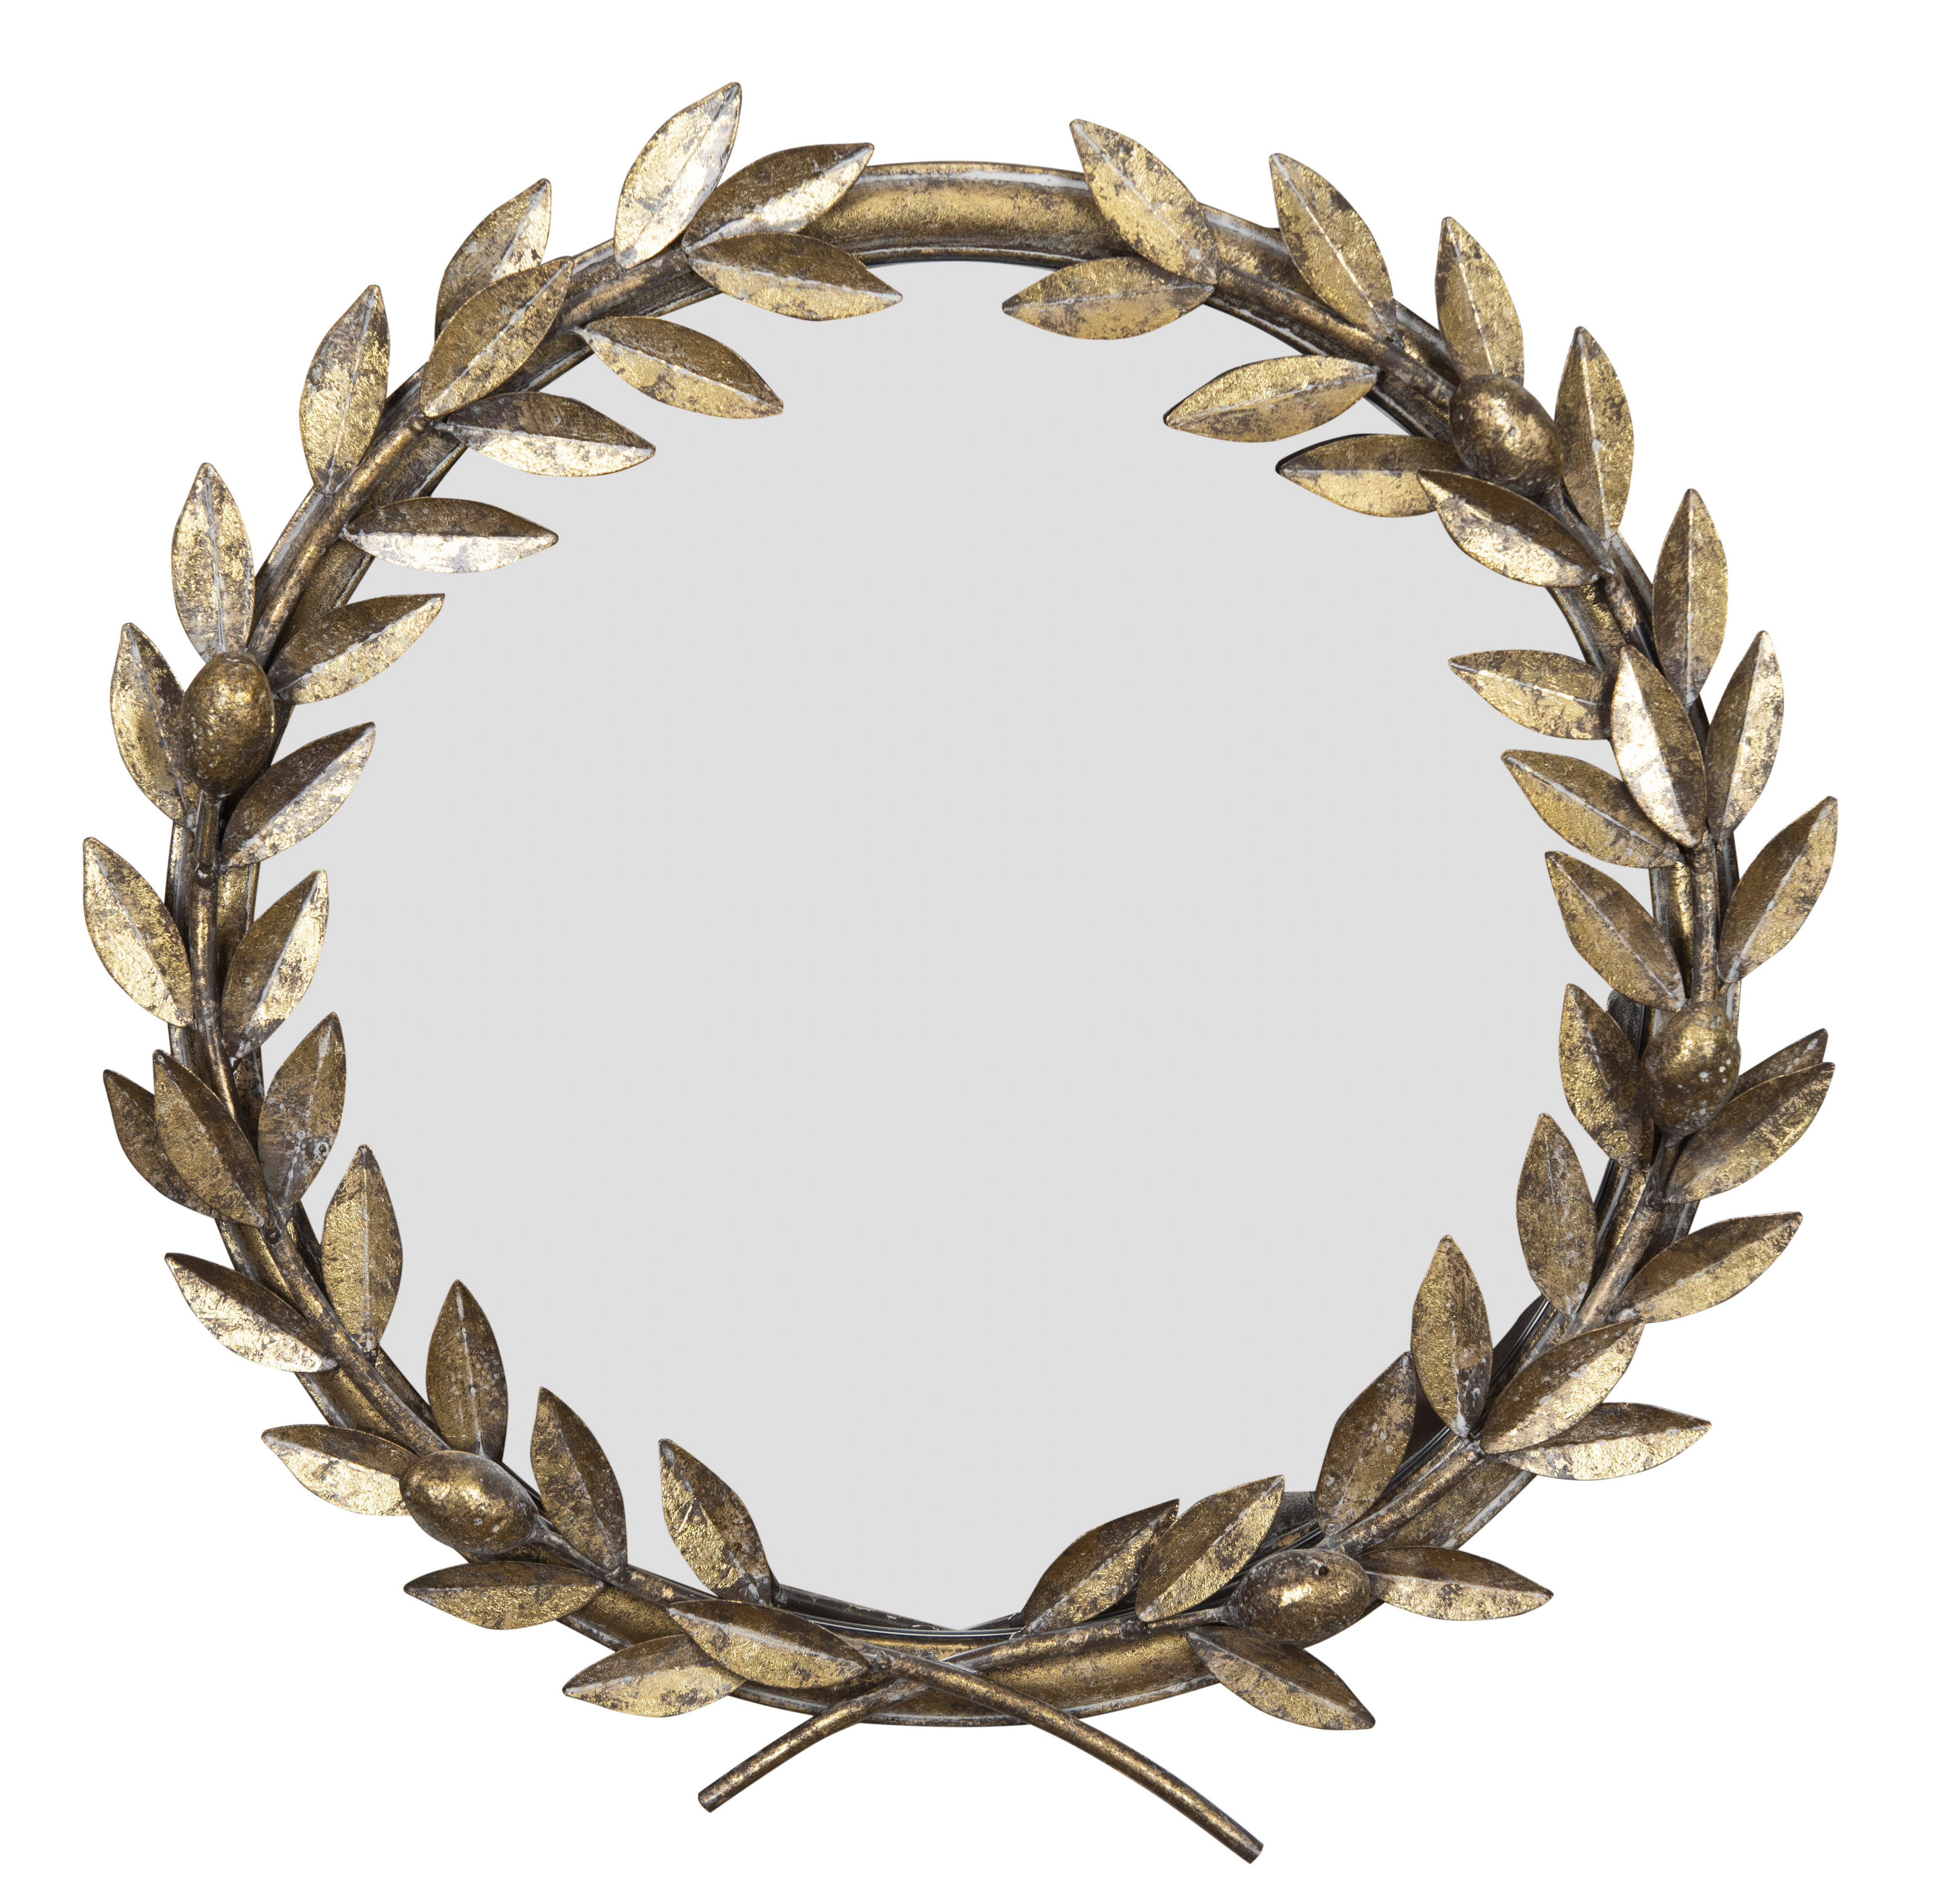 Kaelin Round Laurel Wreath Industrial Accent Mirror With Regard To Favorite Bracelet Traditional Accent Mirrors (View 9 of 20)